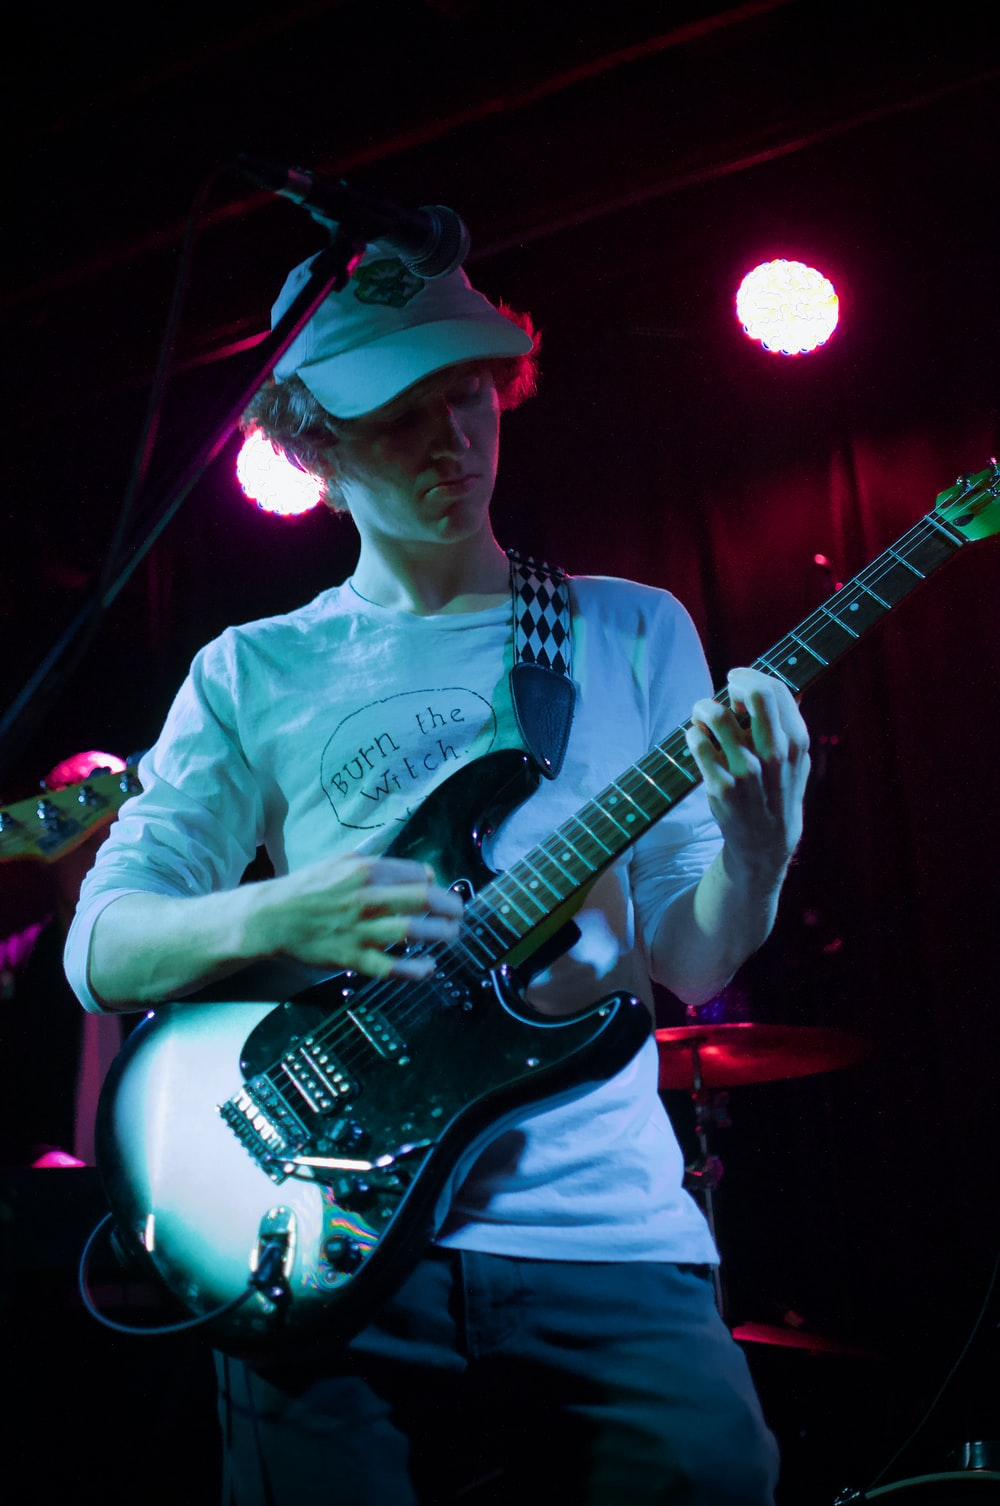 man in white and black crew neck t-shirt playing electric guitar